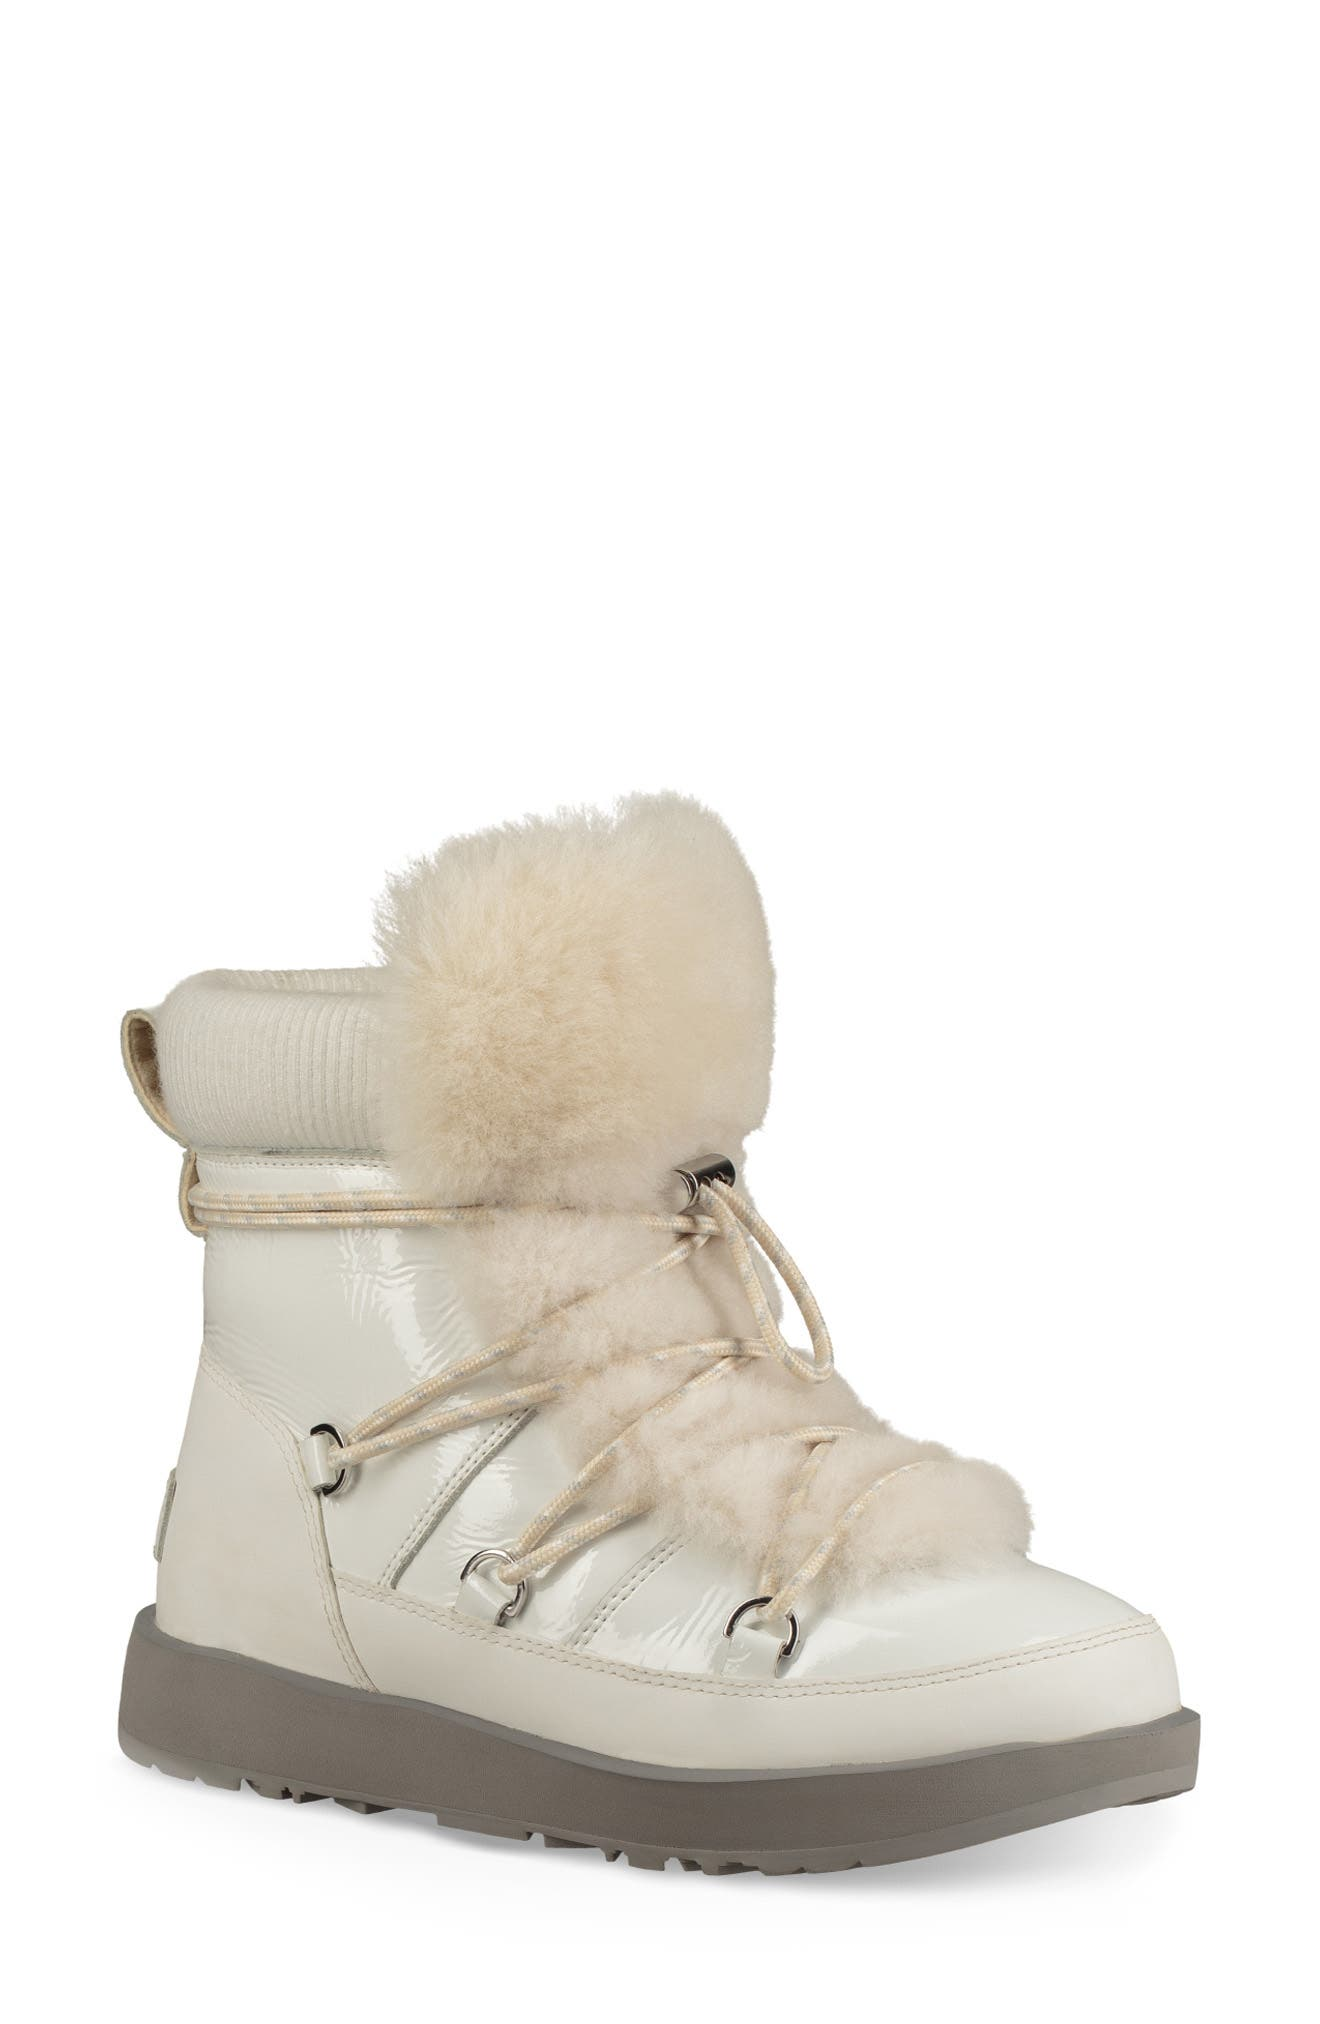 Highland Genuine Shearling Waterproof Bootie,                             Main thumbnail 1, color,                             WHITE LEATHER